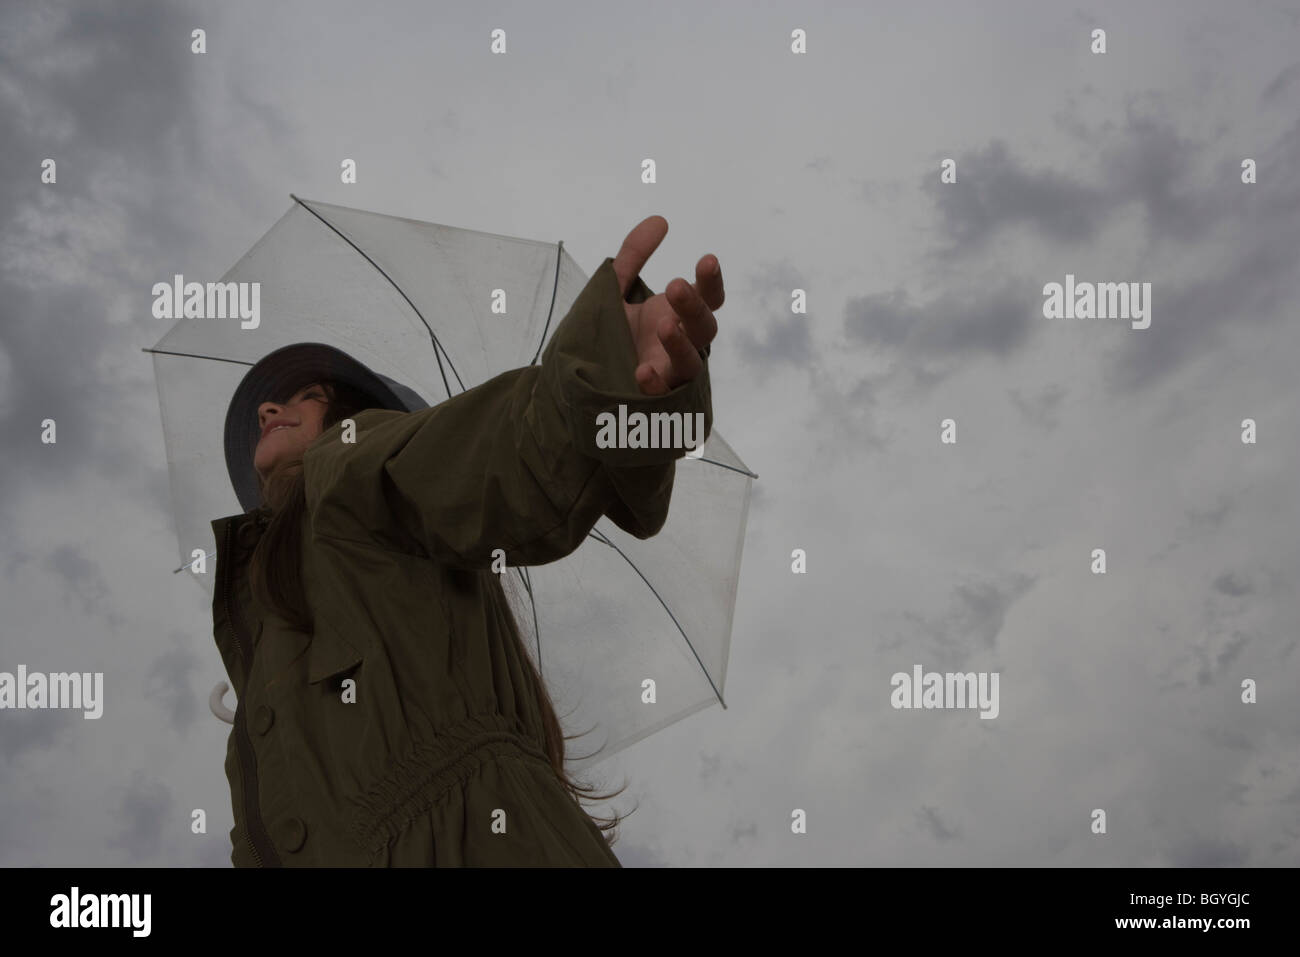 Female with umbrella, arms outstretched and head back, looking away, smiling - Stock Image